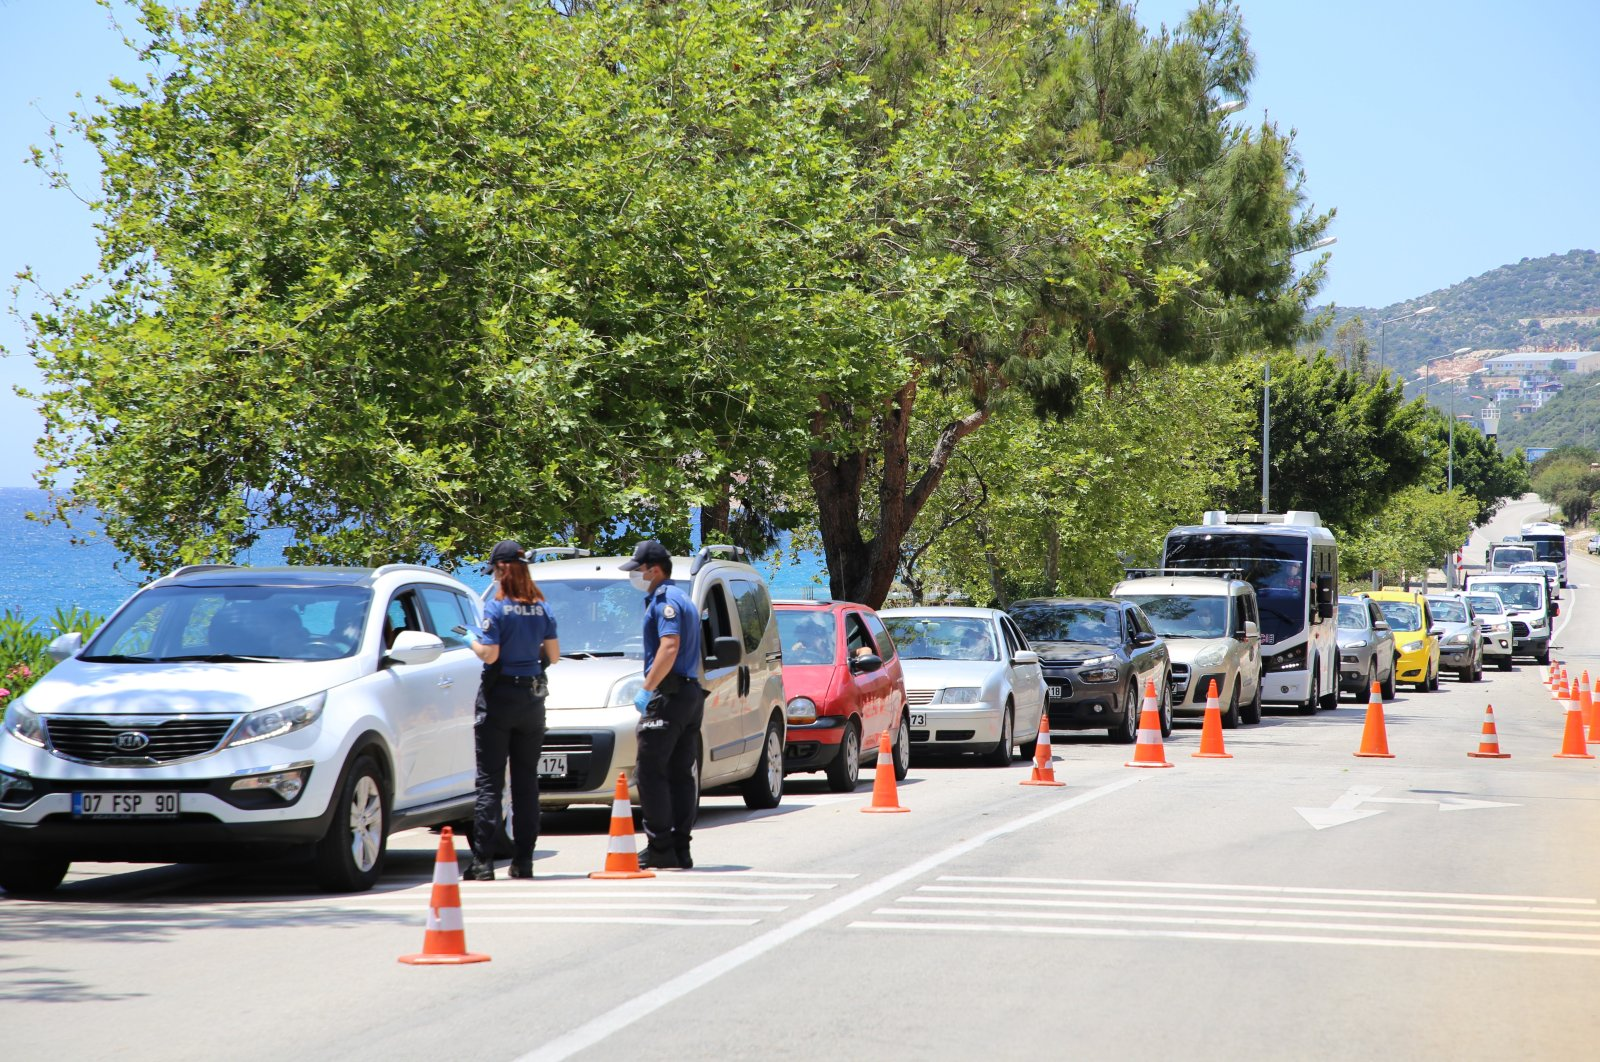 Police inspect vehicles entering Kaş district, in Antalya, Turkey, June 2, 2020. (İHA Photo)